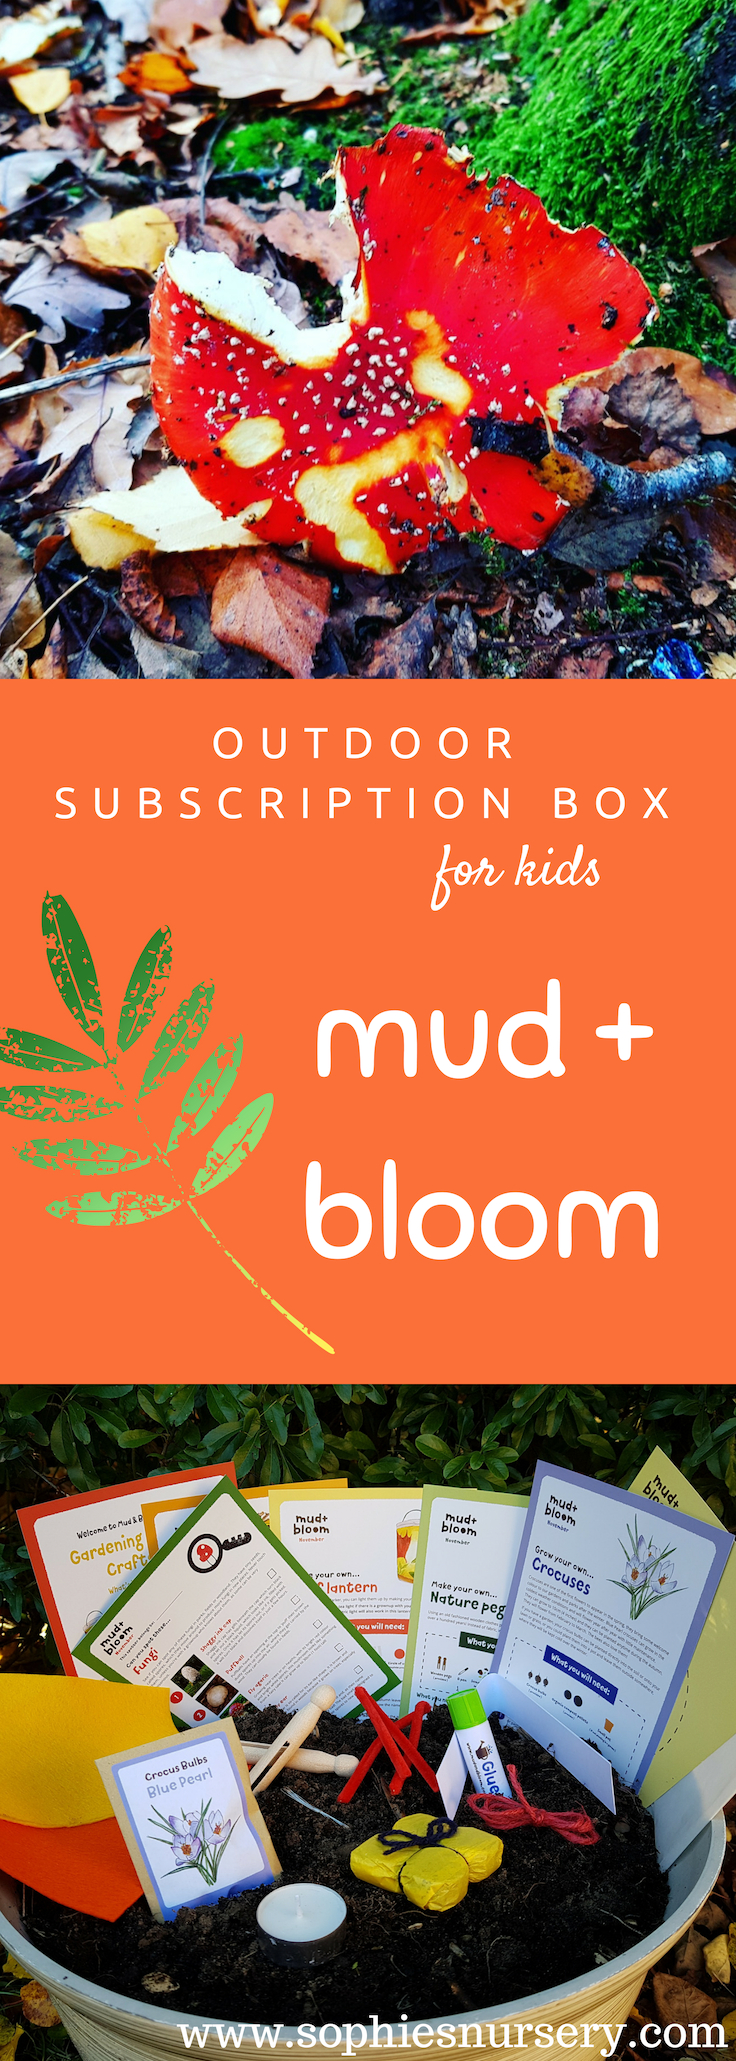 A Mud & Bloom outdoor subscription box combines 3 of my favourite things - nature, crafts & education. Each seasonal box is packed full of amazing activities to complete outdoors with kids!